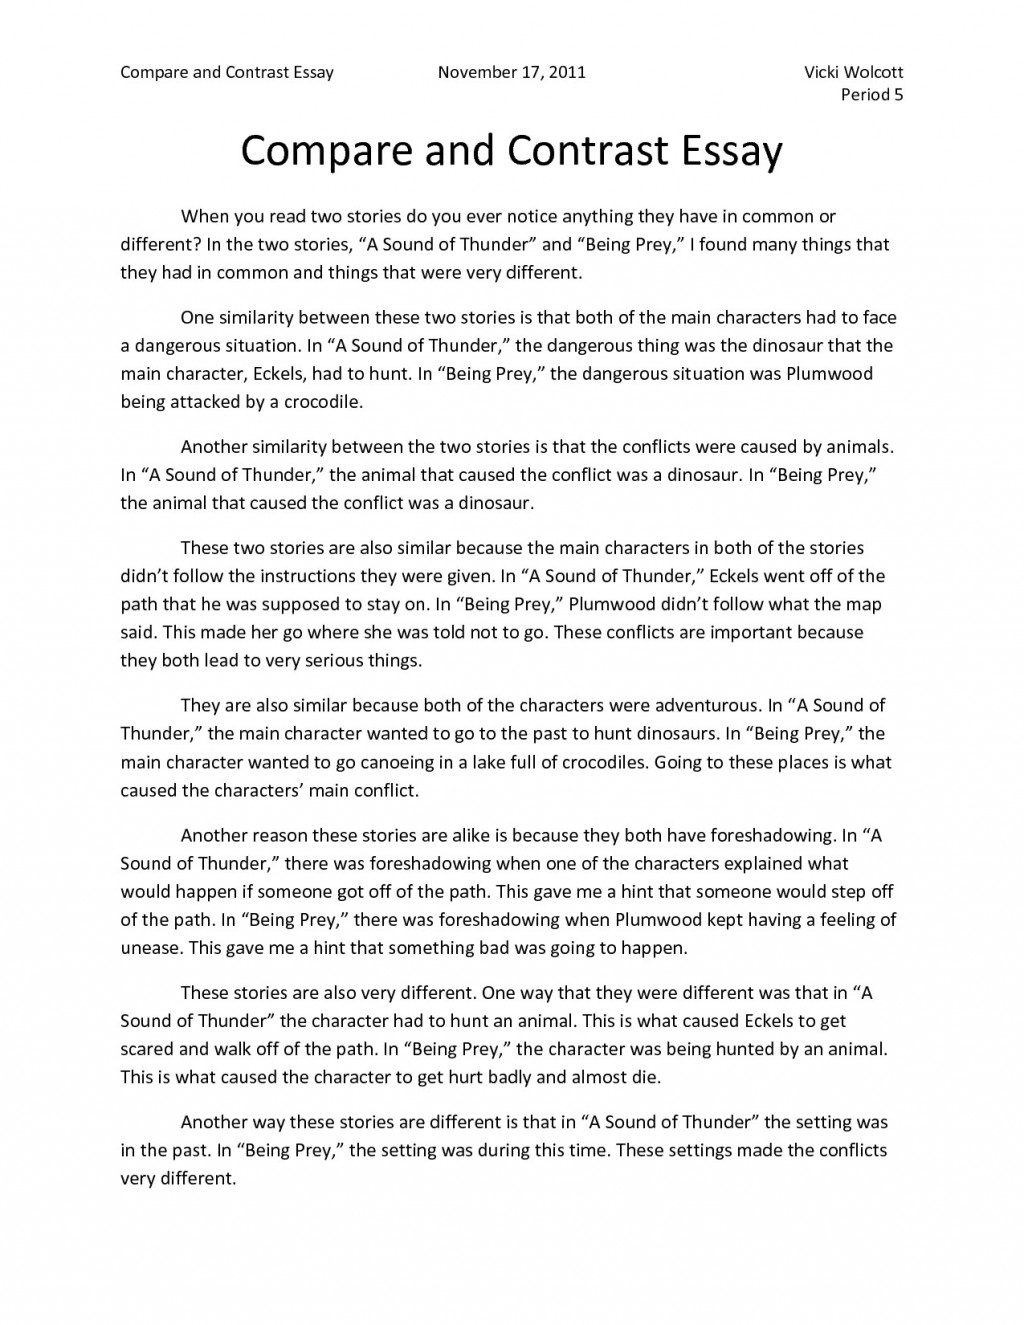 003 Essay Example Comparison And Contrast Essays Examples Ideas Maus Frightening Free Compare Pdf College Large